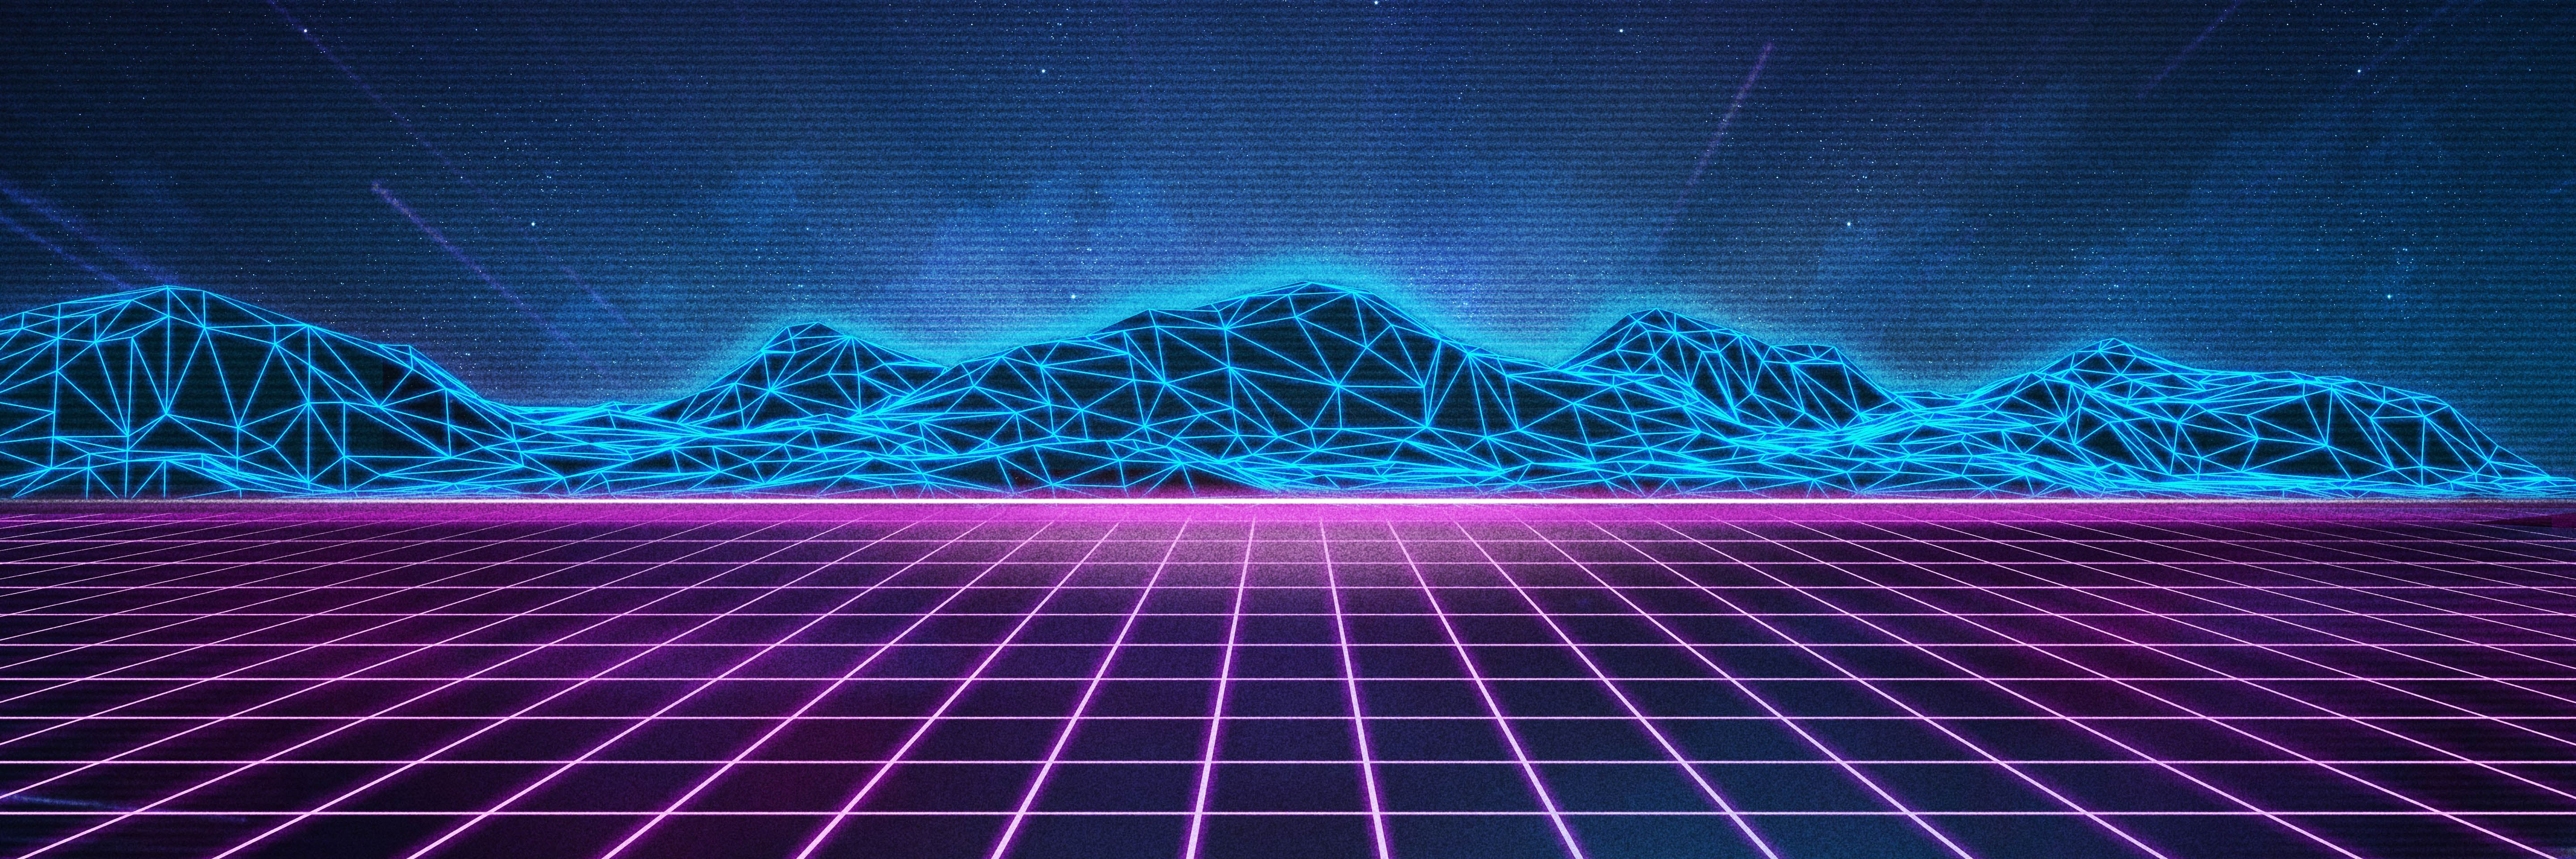 Download Retro Wave 1440x2560 Resolution, HD 8K Wallpapers